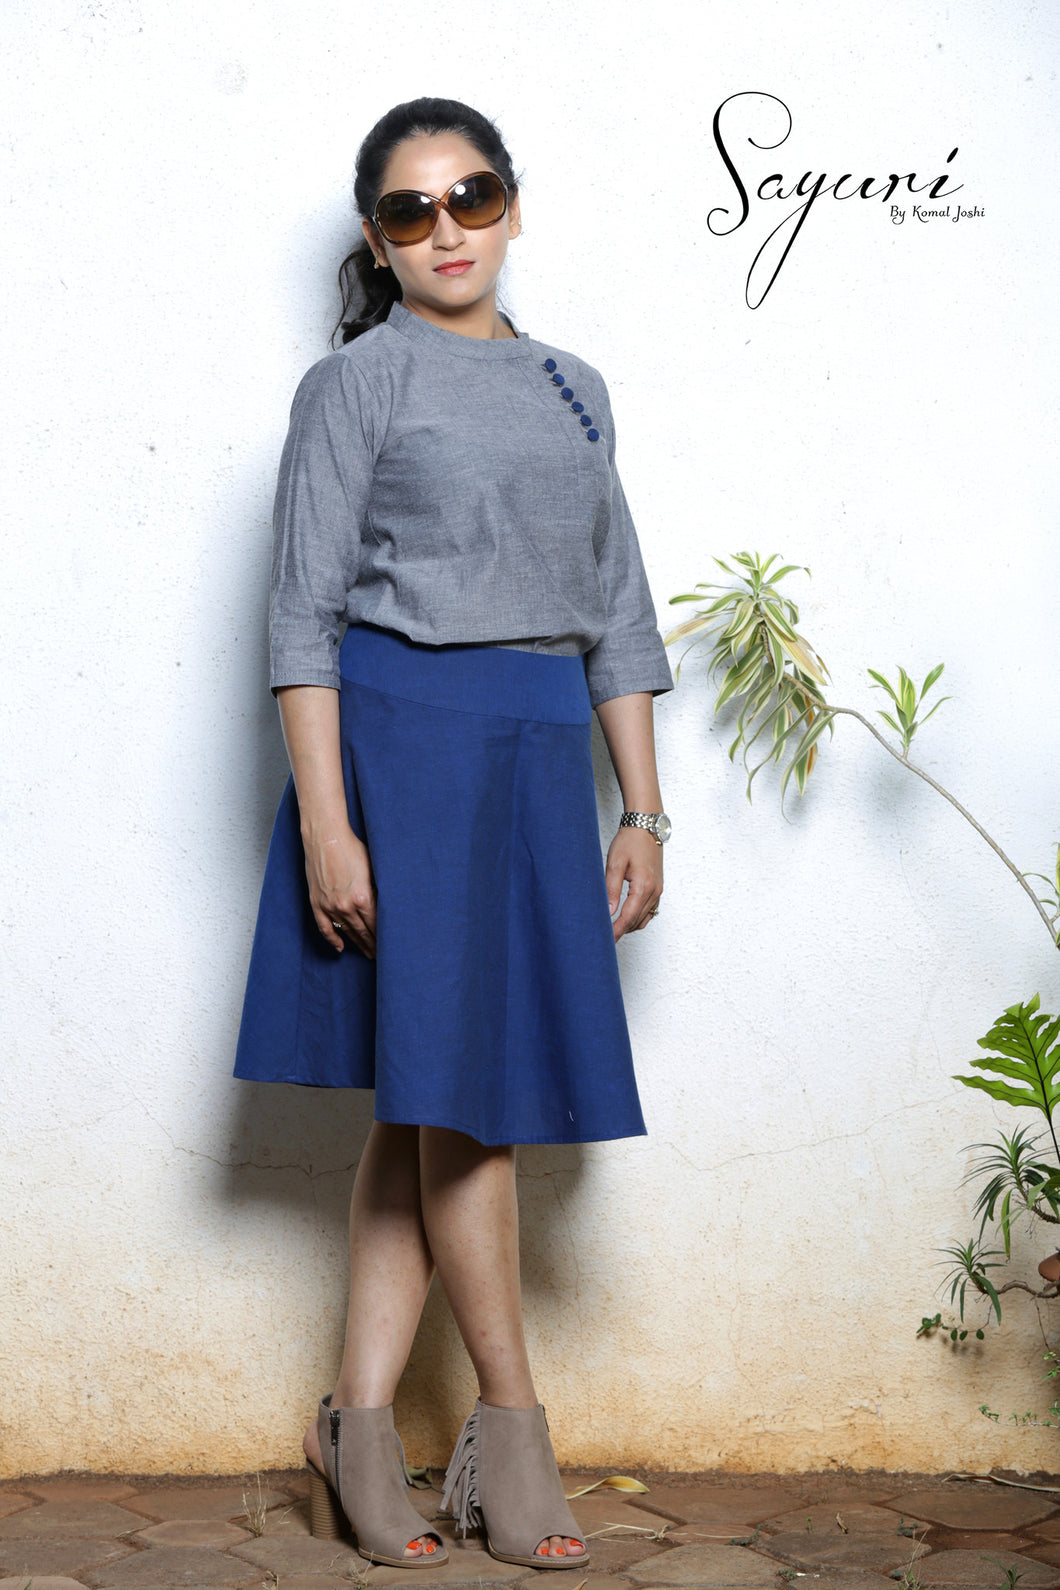 Grey handloom flat collared top, blue handloom skirt